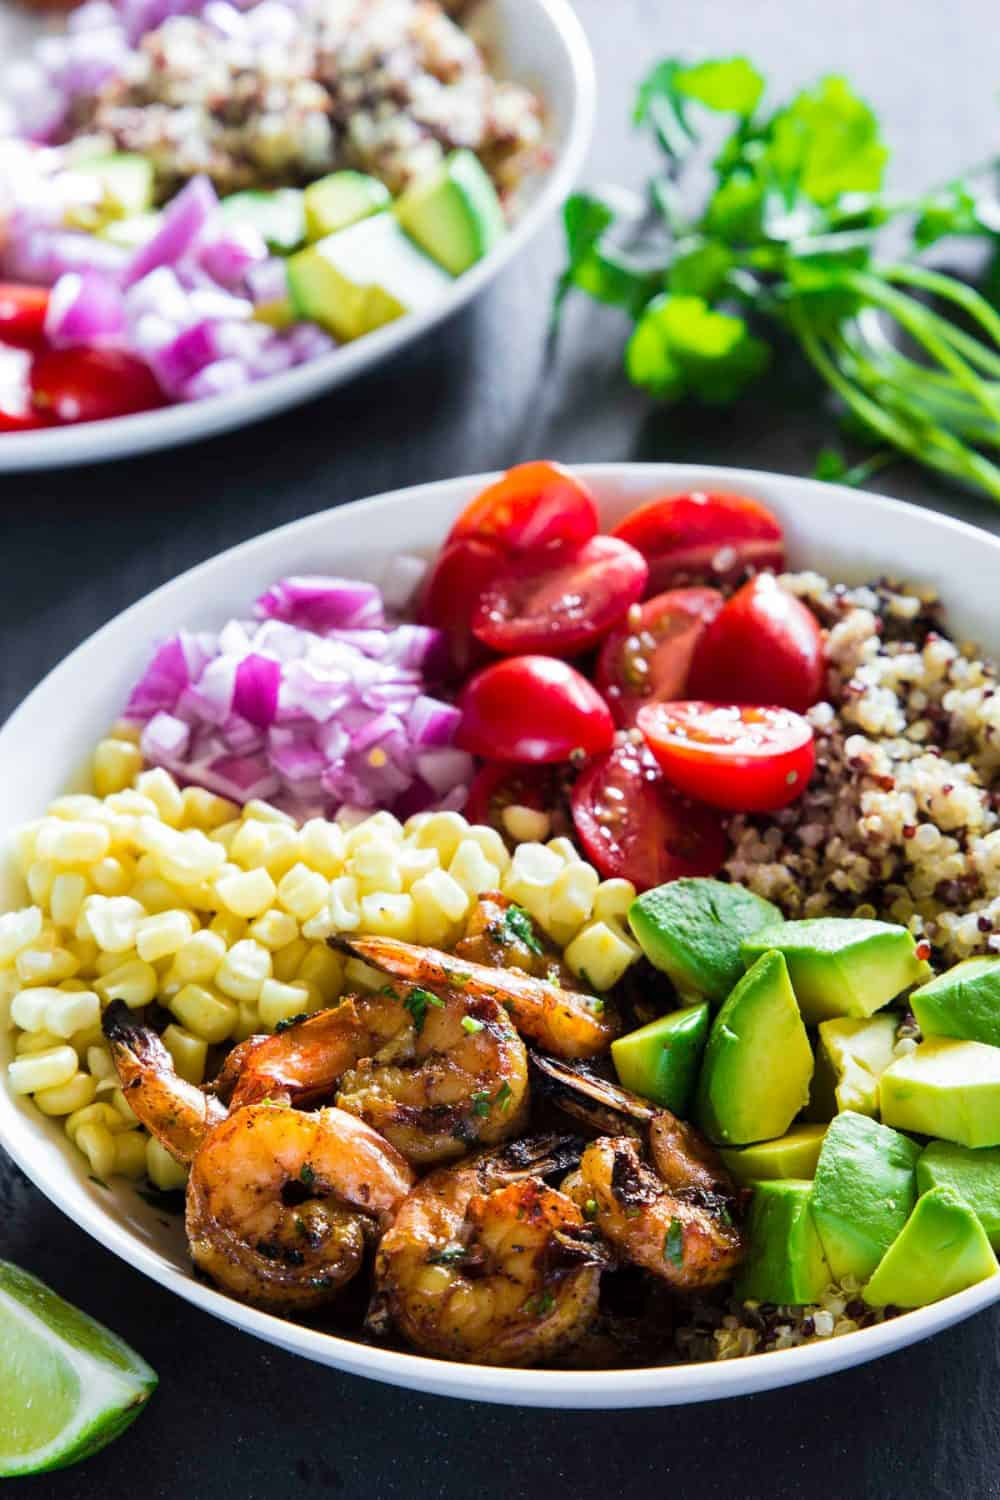 Large white bowl filled with quinoa, shrimp, corn, onions, tomatoes, and avocado to create a Shrimp Quinoa Bowl sitting on a dark wooden surface